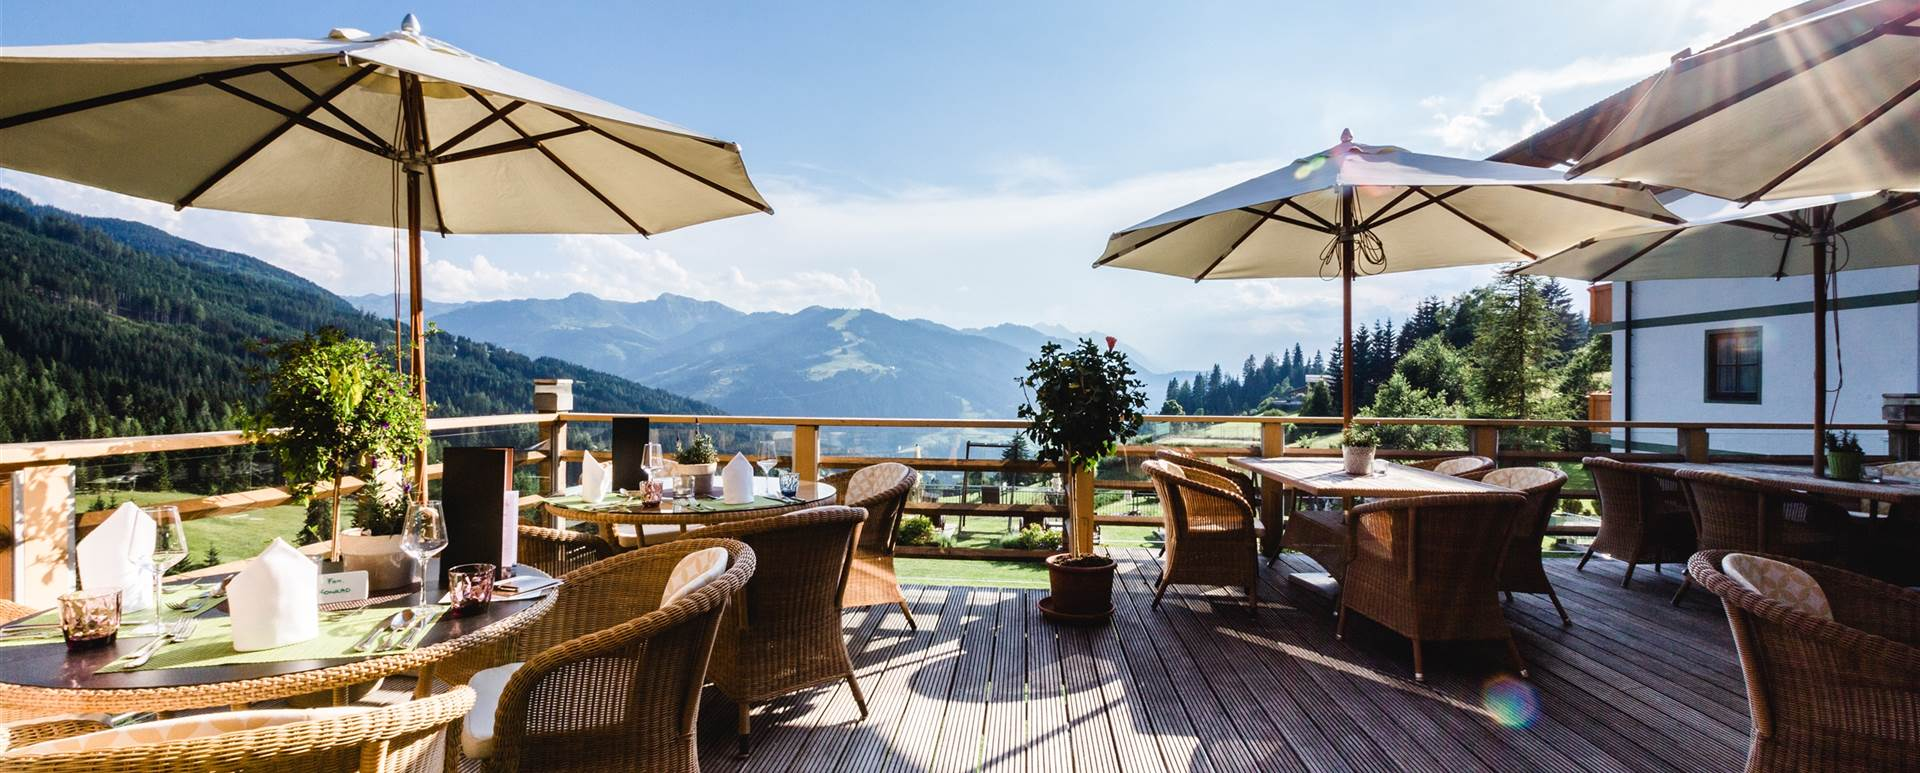 Hotel Edelweiss terrace with tables and chairs